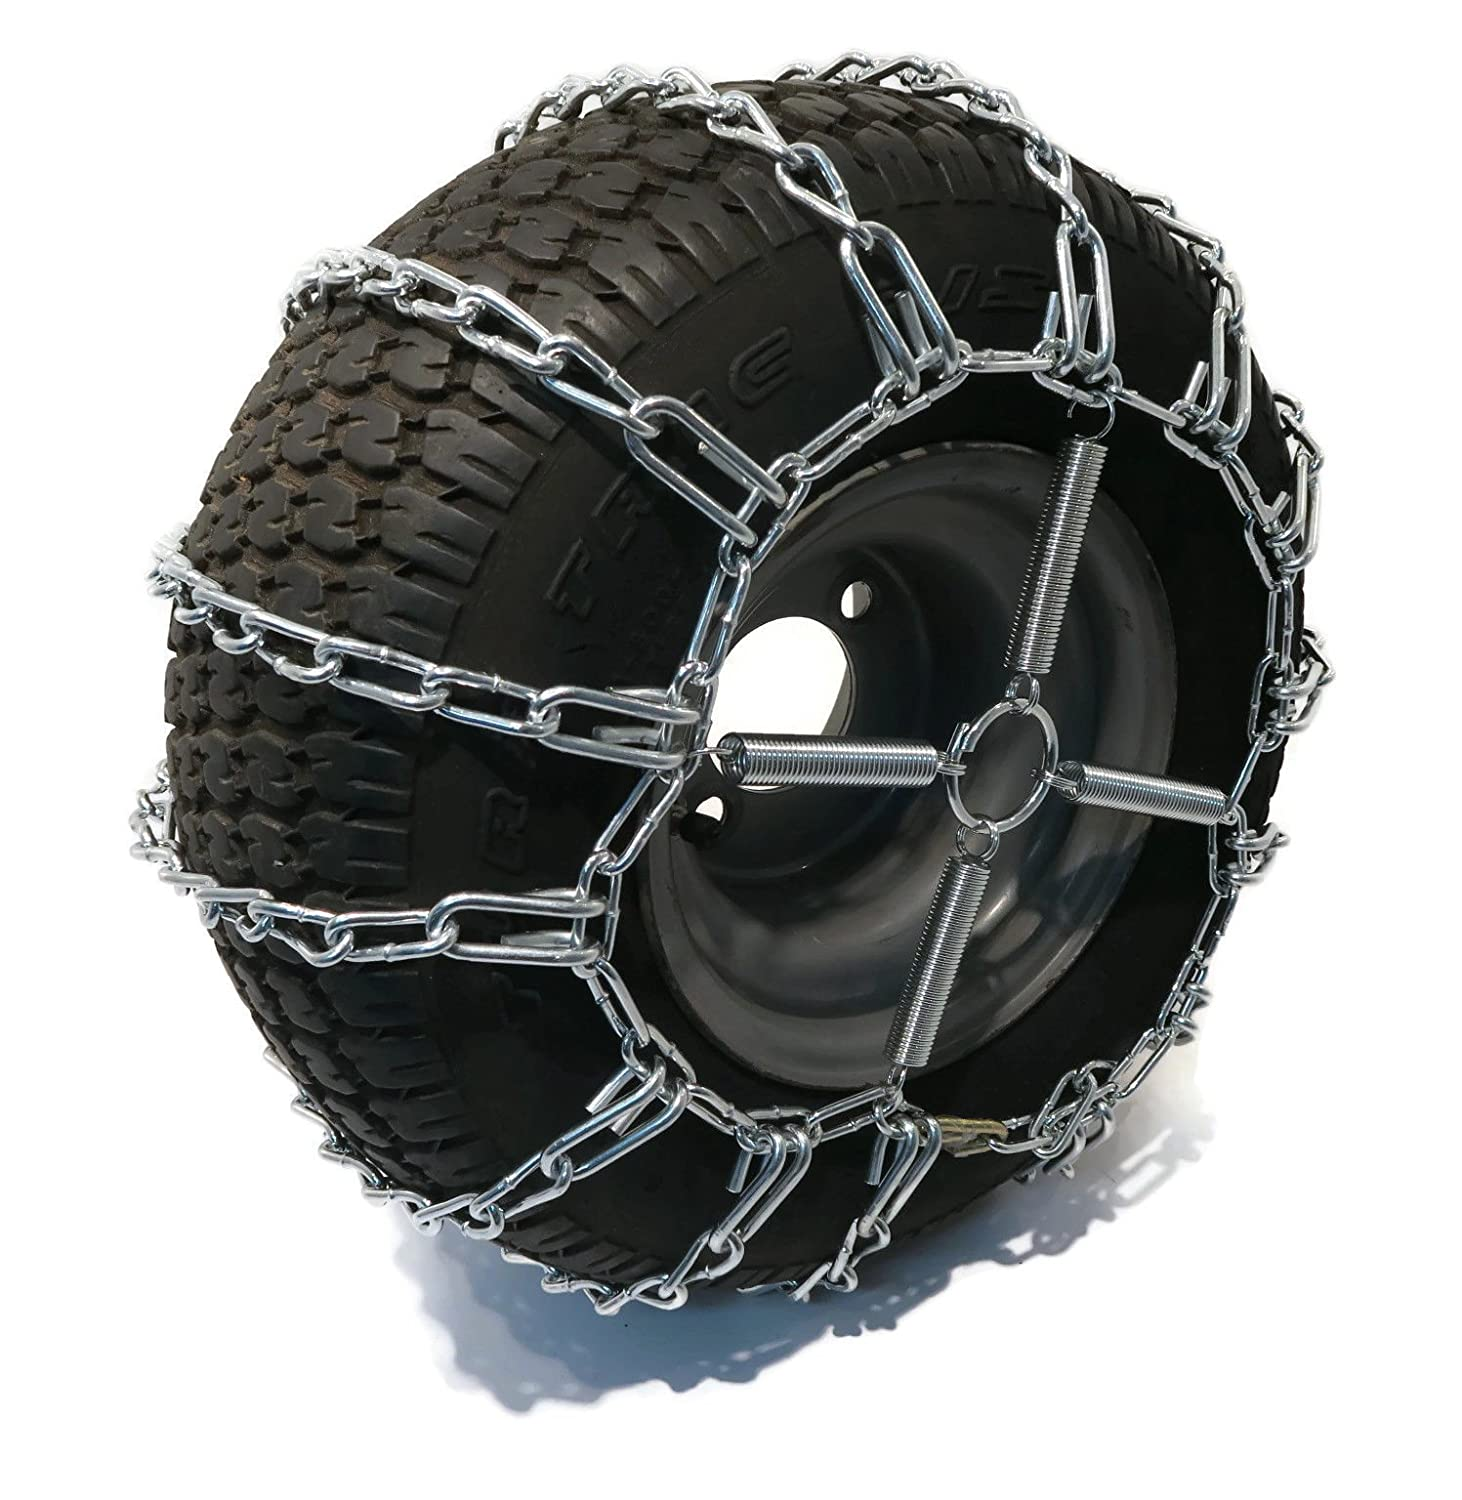 The ROP Shop 2 Link TIRE Chains /& TENSIONERS 20x8x8 for John Deere Lawn Mower Tractor Rider